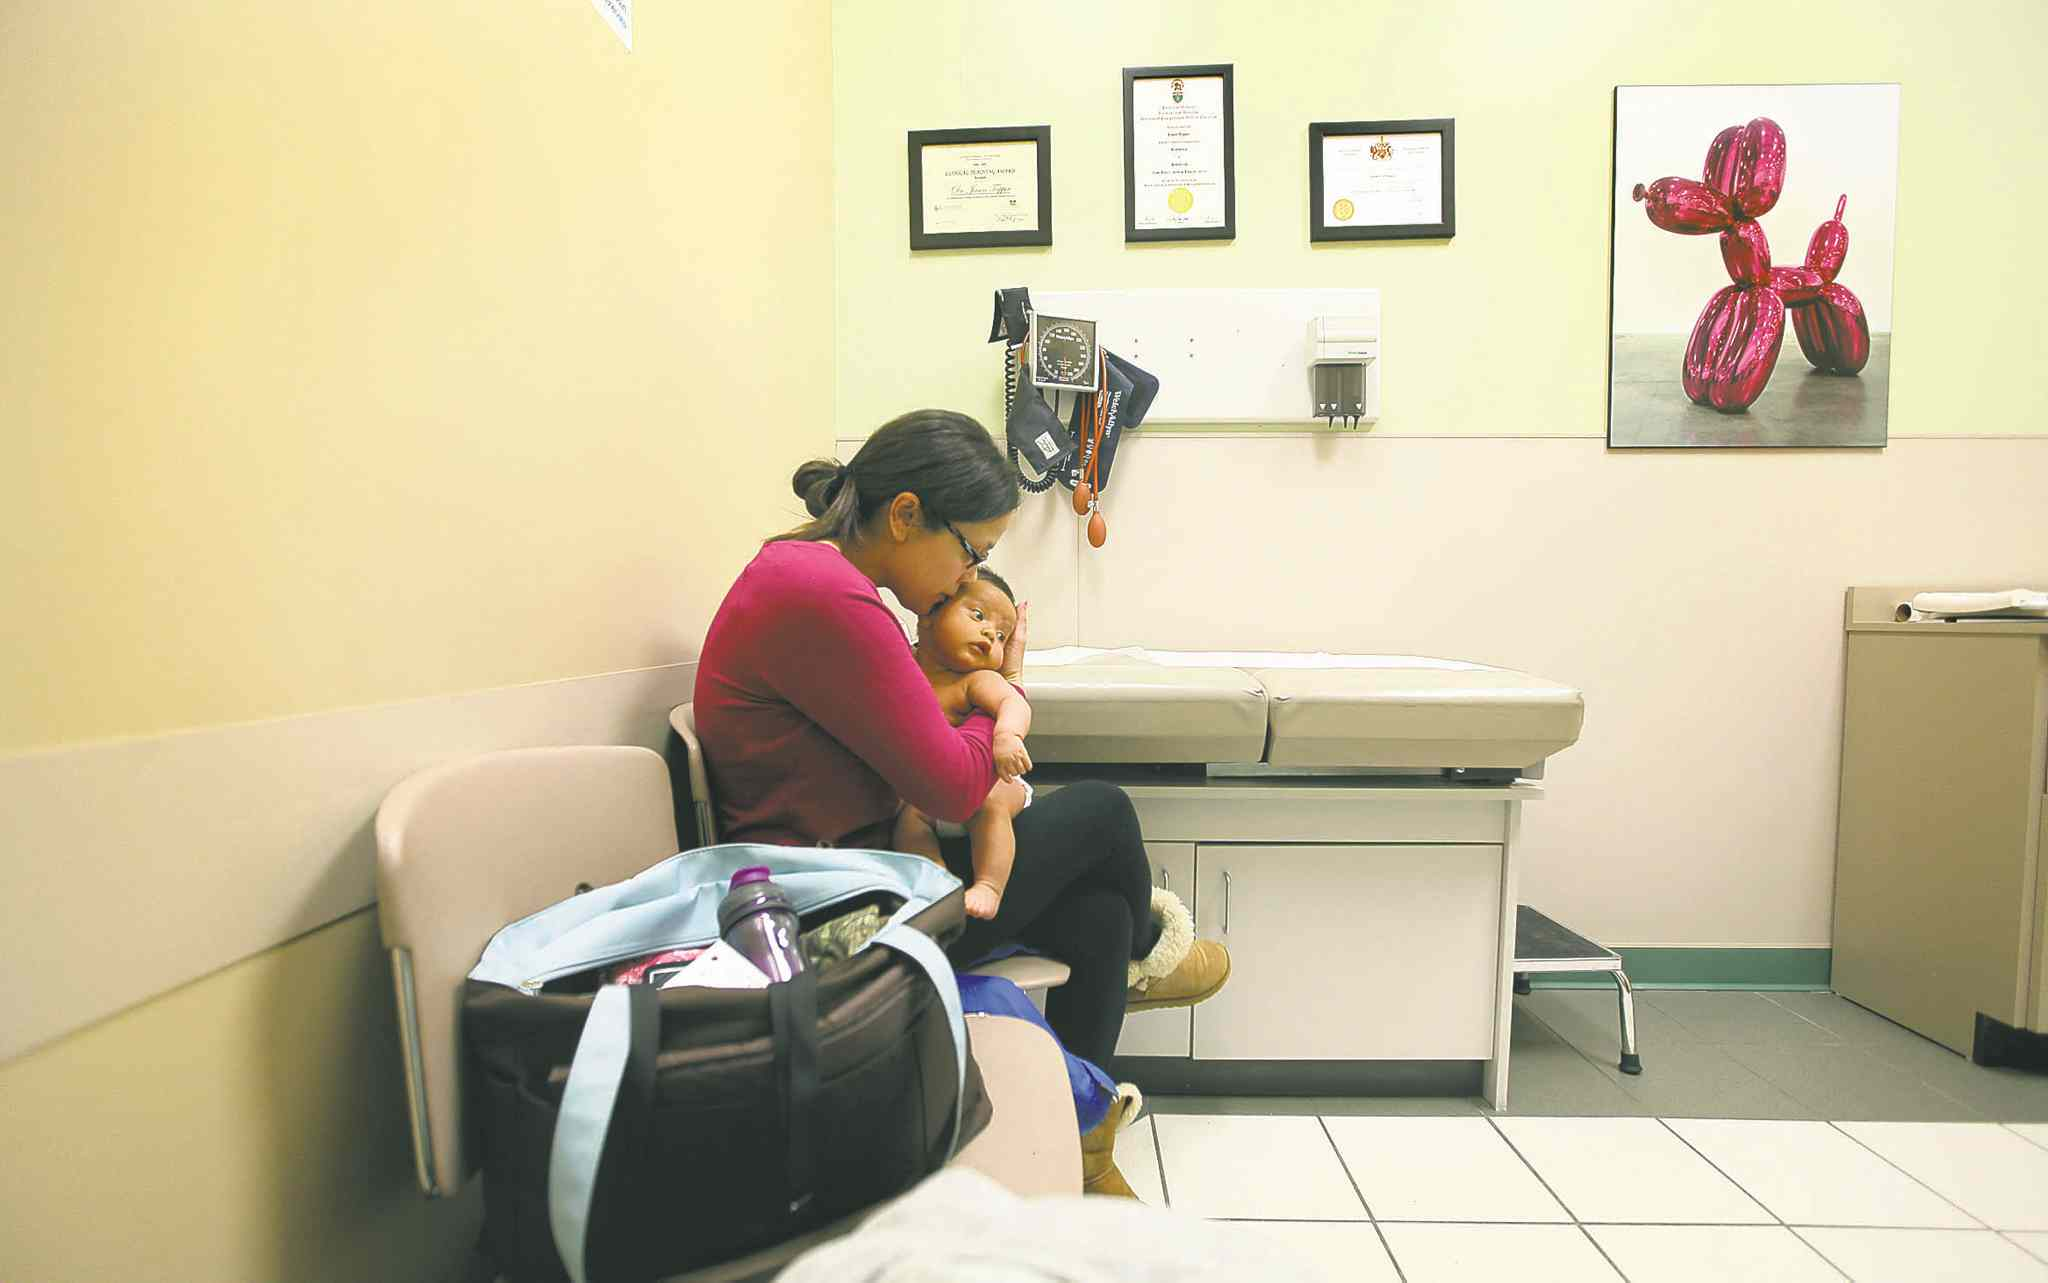 Wendy Hallgrimson cuddles Lindal at her pediatrician's office, where the baby will get his first immunization shots and a check up.